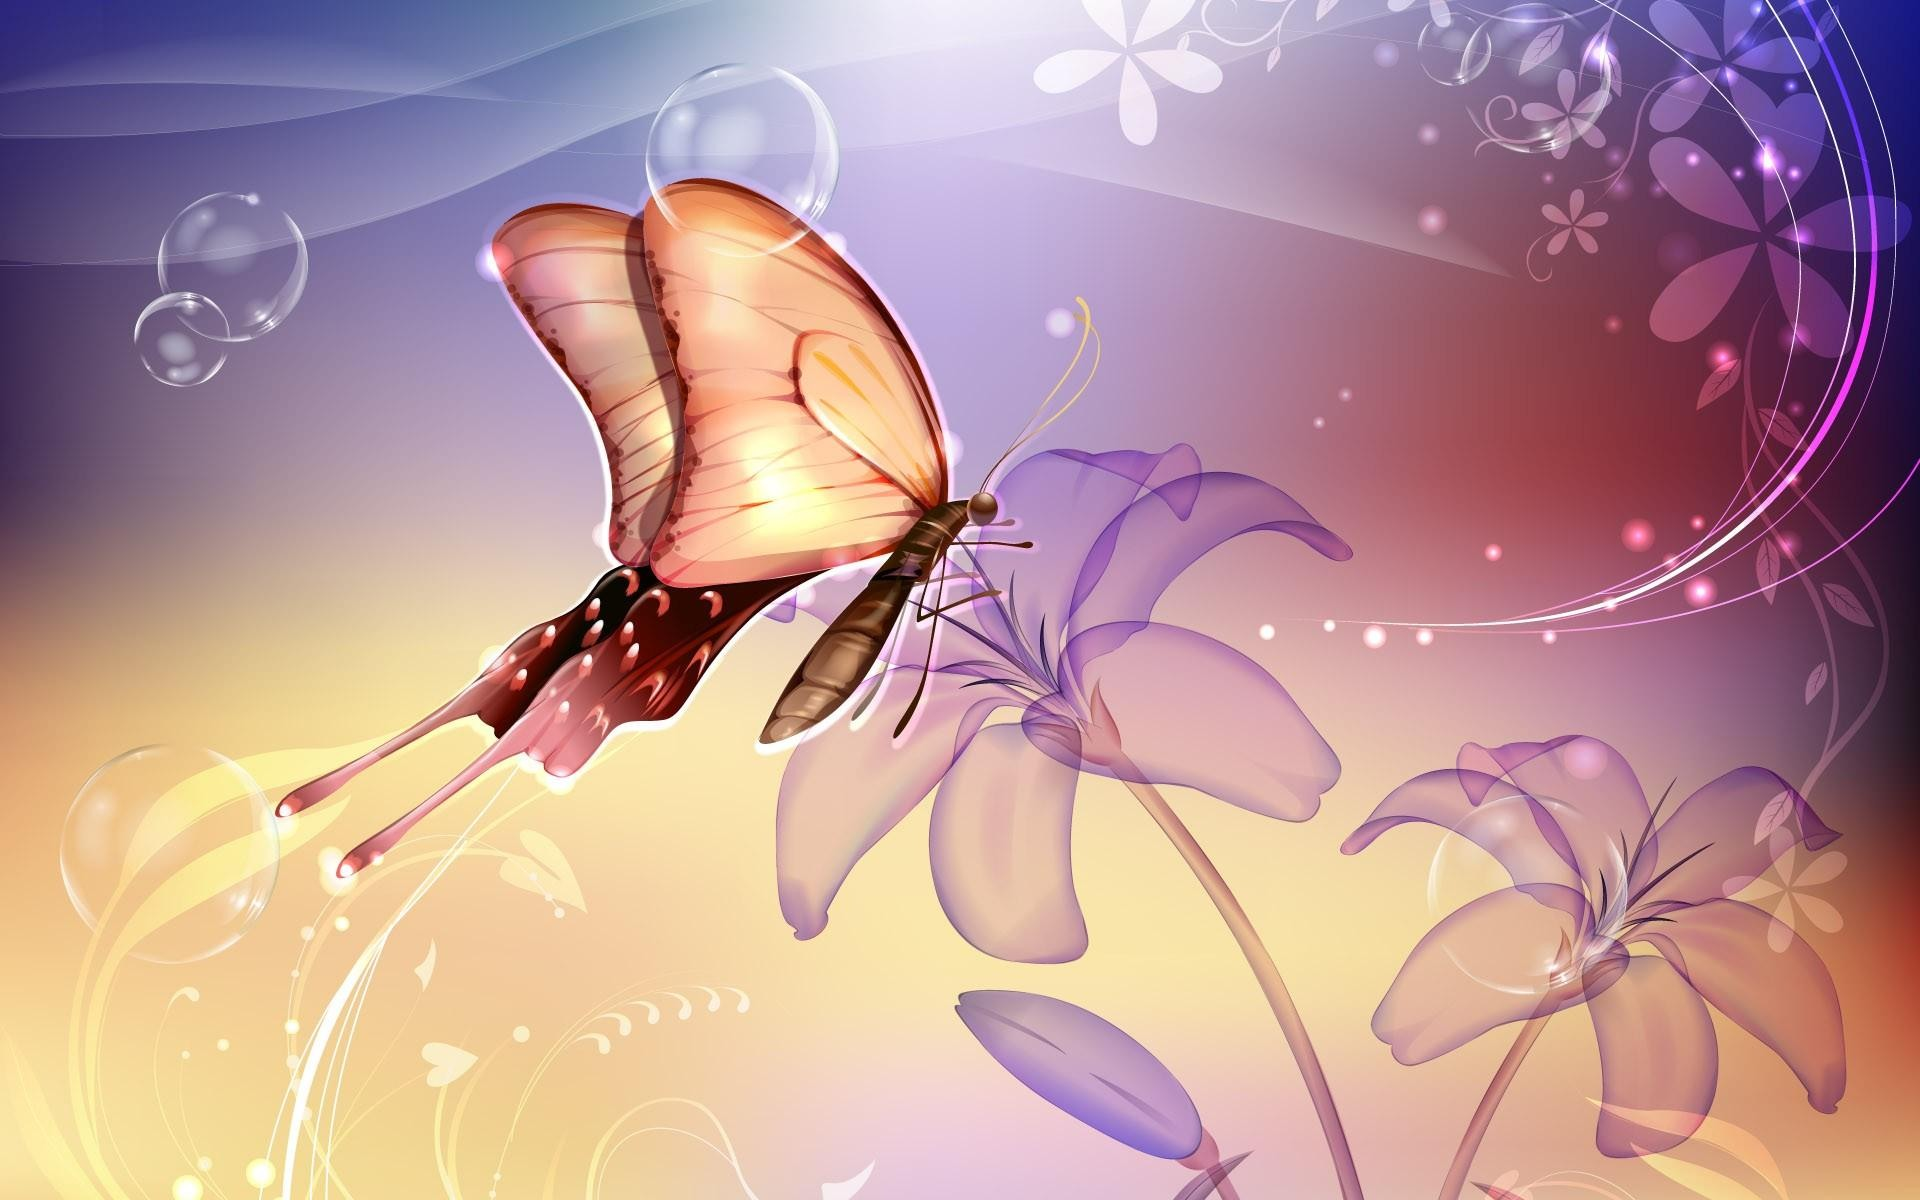 Download Free Butterfly Wallpapers For Your Mobile Phone Most 1920x1200